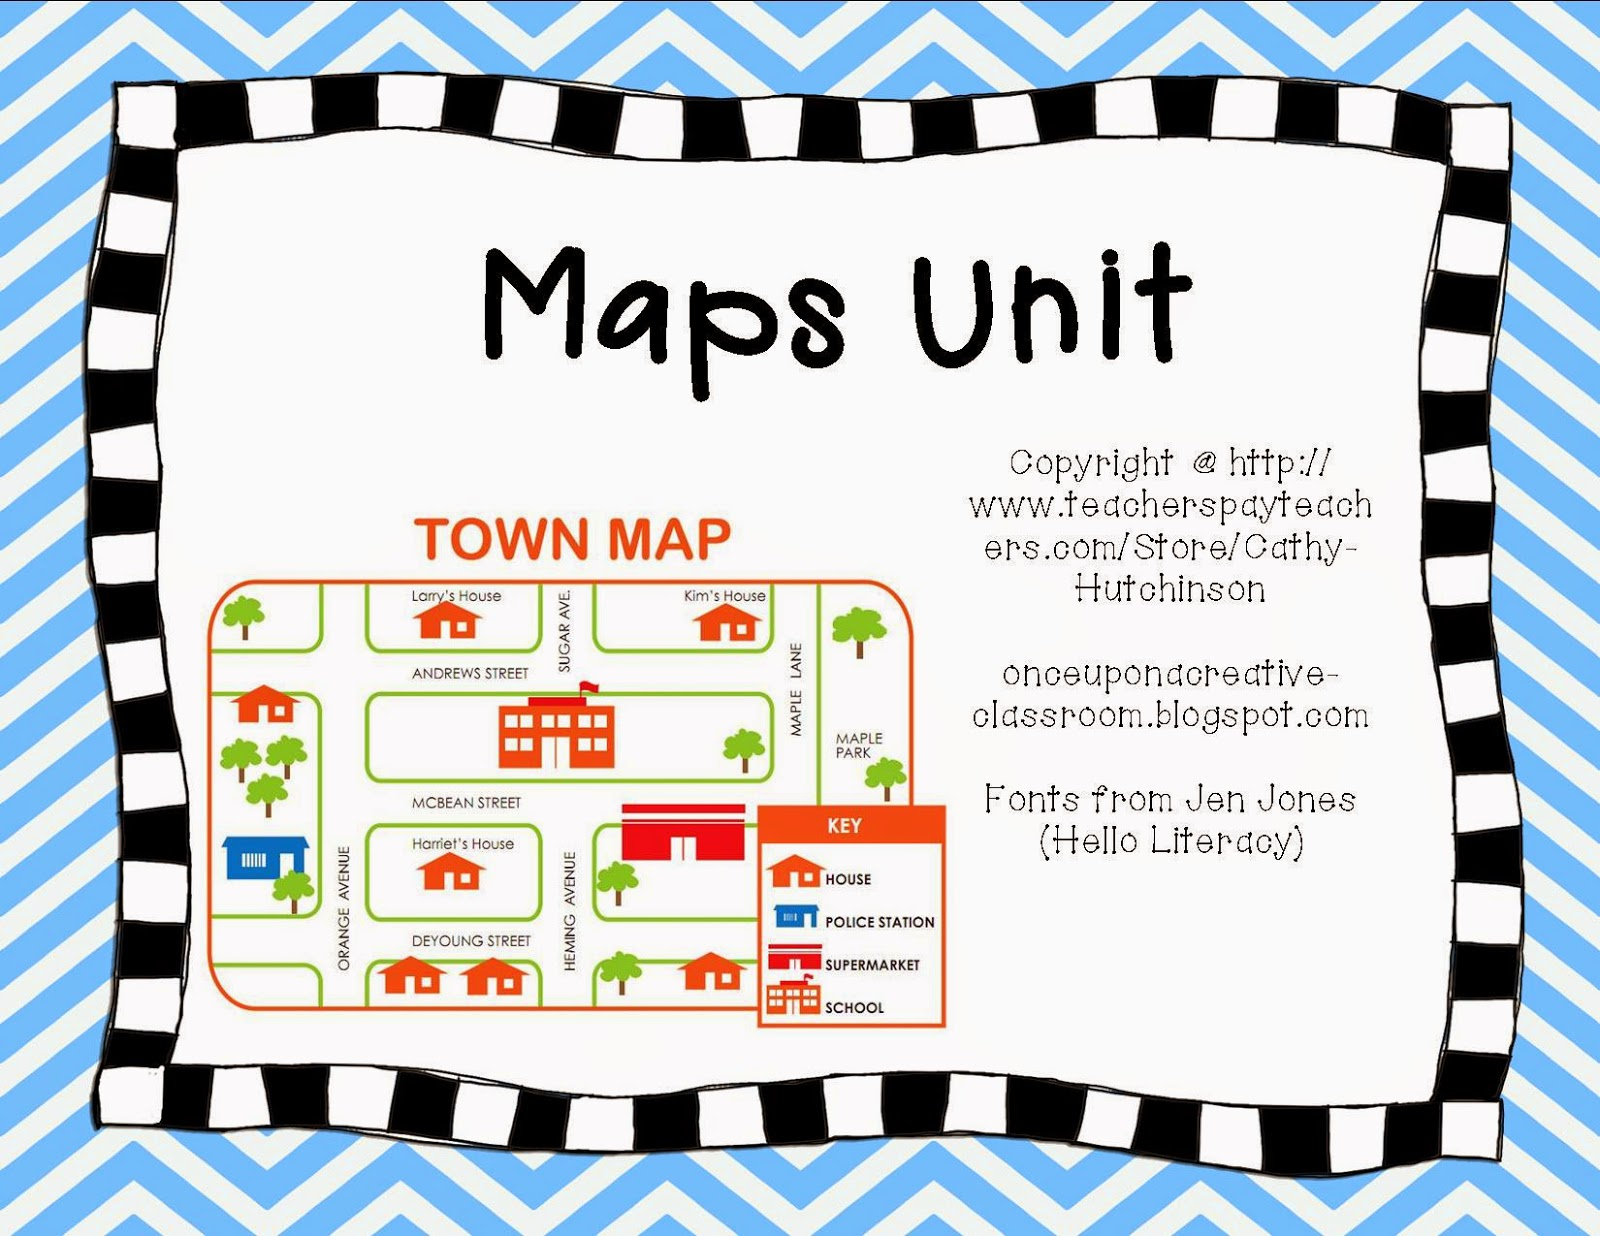 http://www.teacherspayteachers.com/Product/Maps-Unit-Perfect-for-Early-Elementary-572877